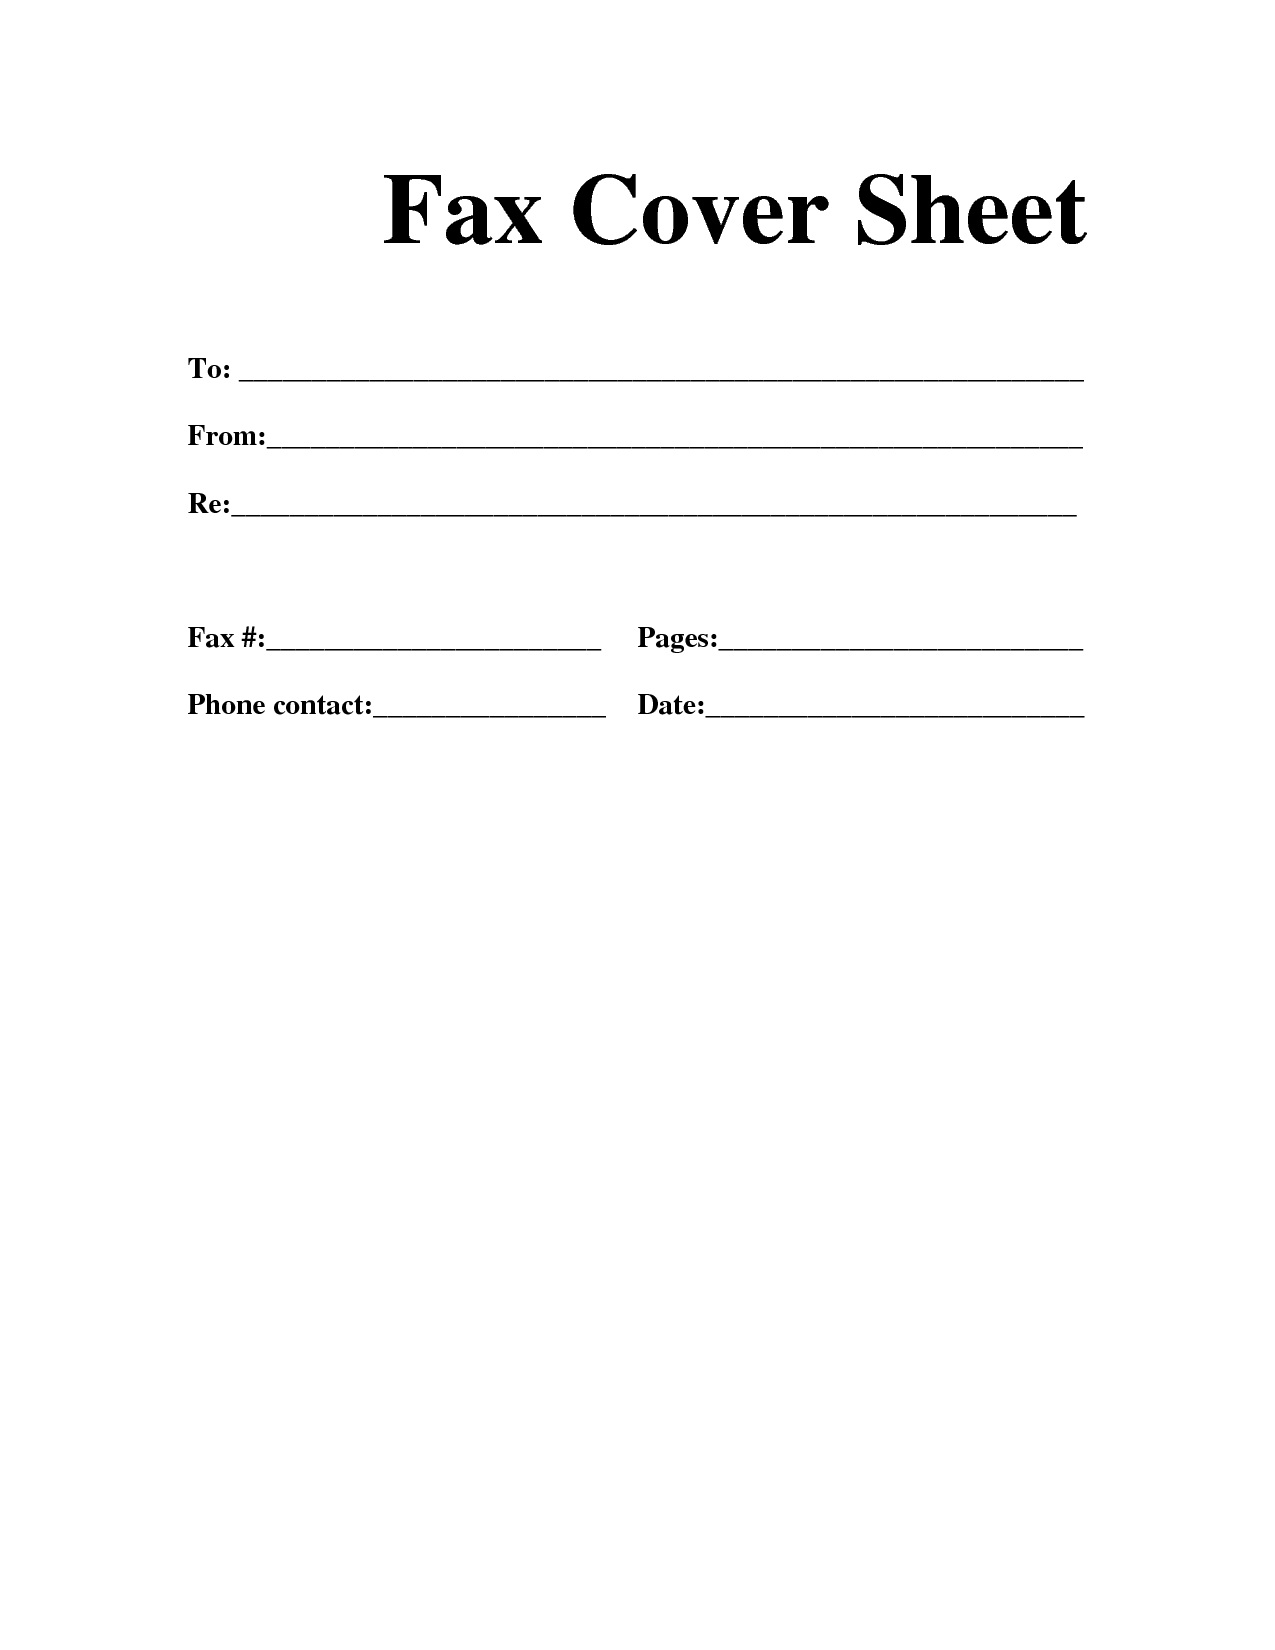 Resume Cover Sheet Format Blank Fax Cover Letter Sheets For Fax Cover Sheet Resume